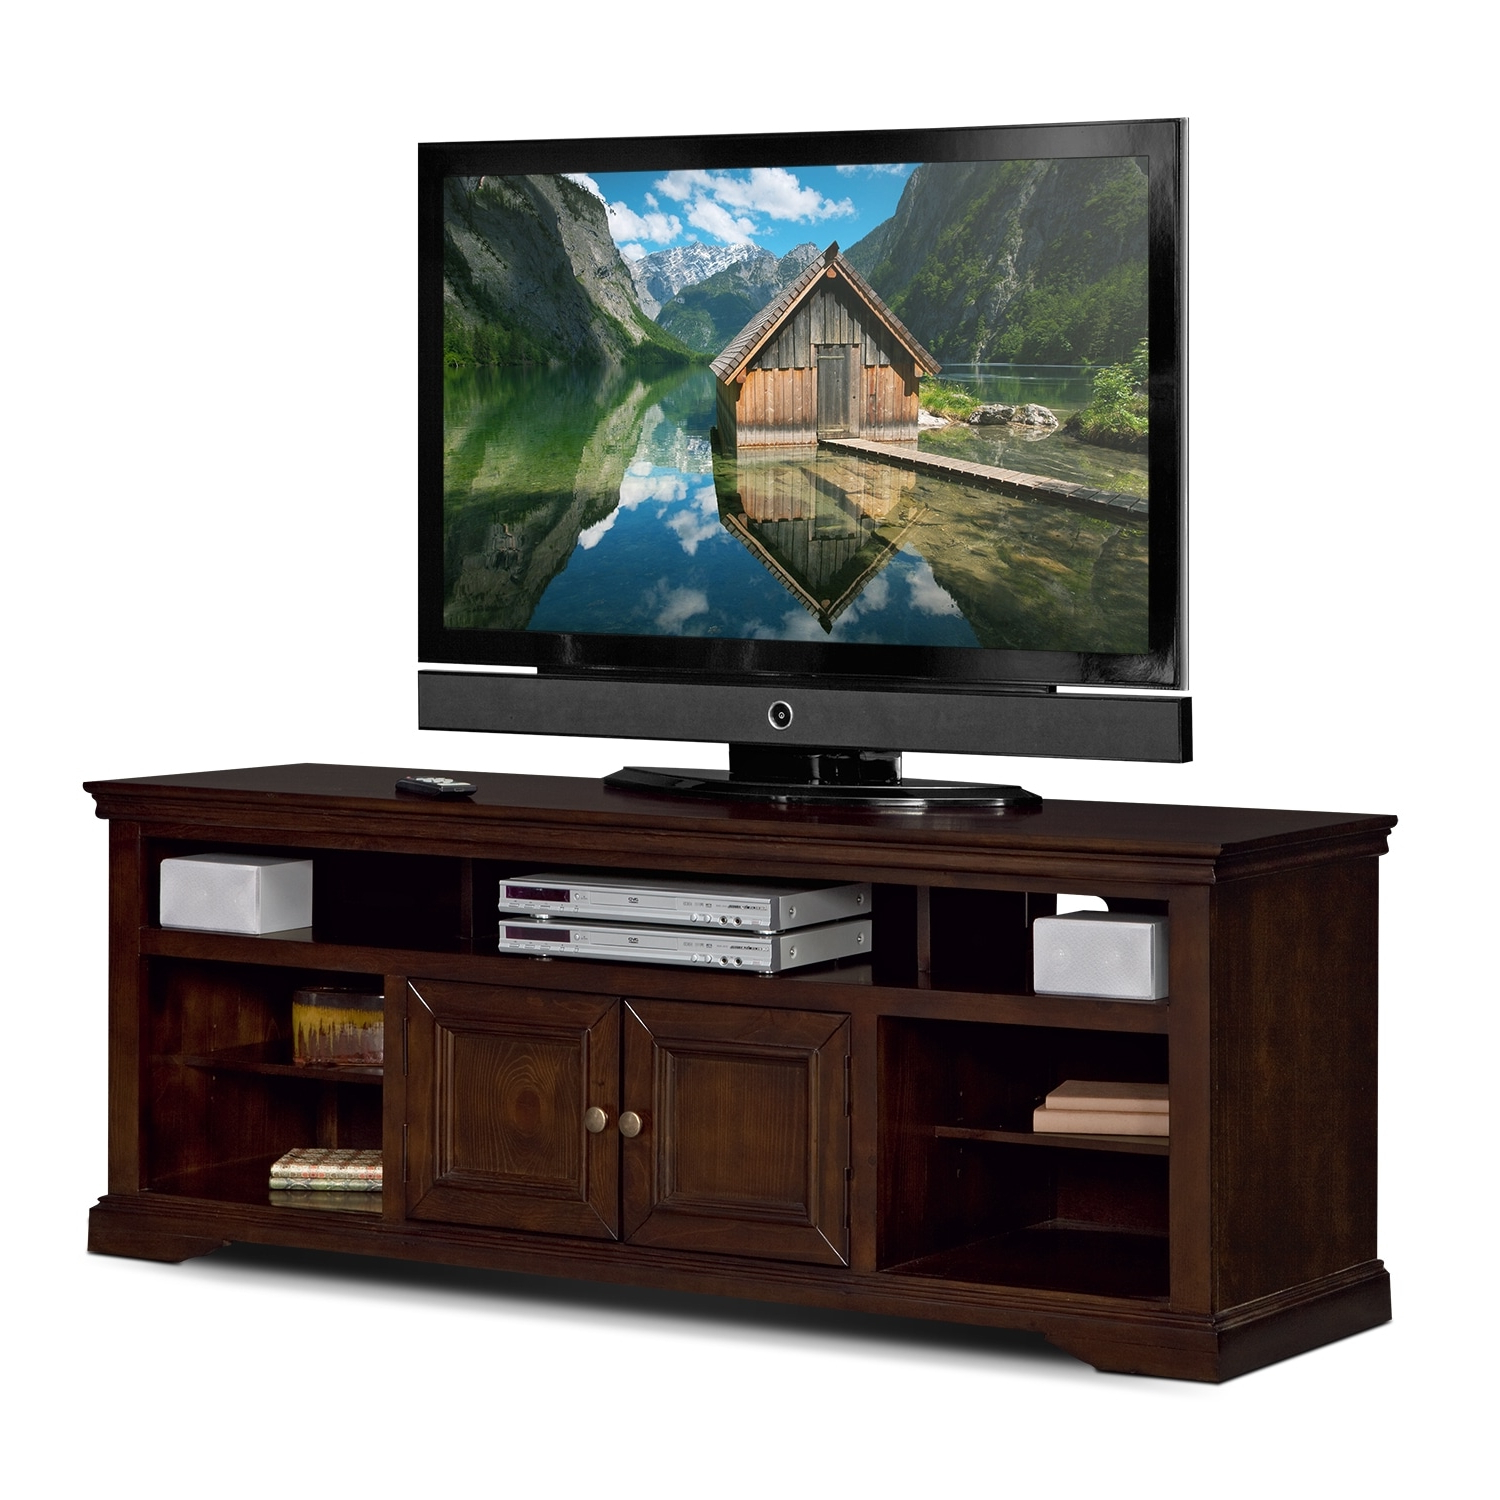 Value City Furniture And Mattresses Throughout Famous Cherry Wood Tv Stands (View 8 of 20)